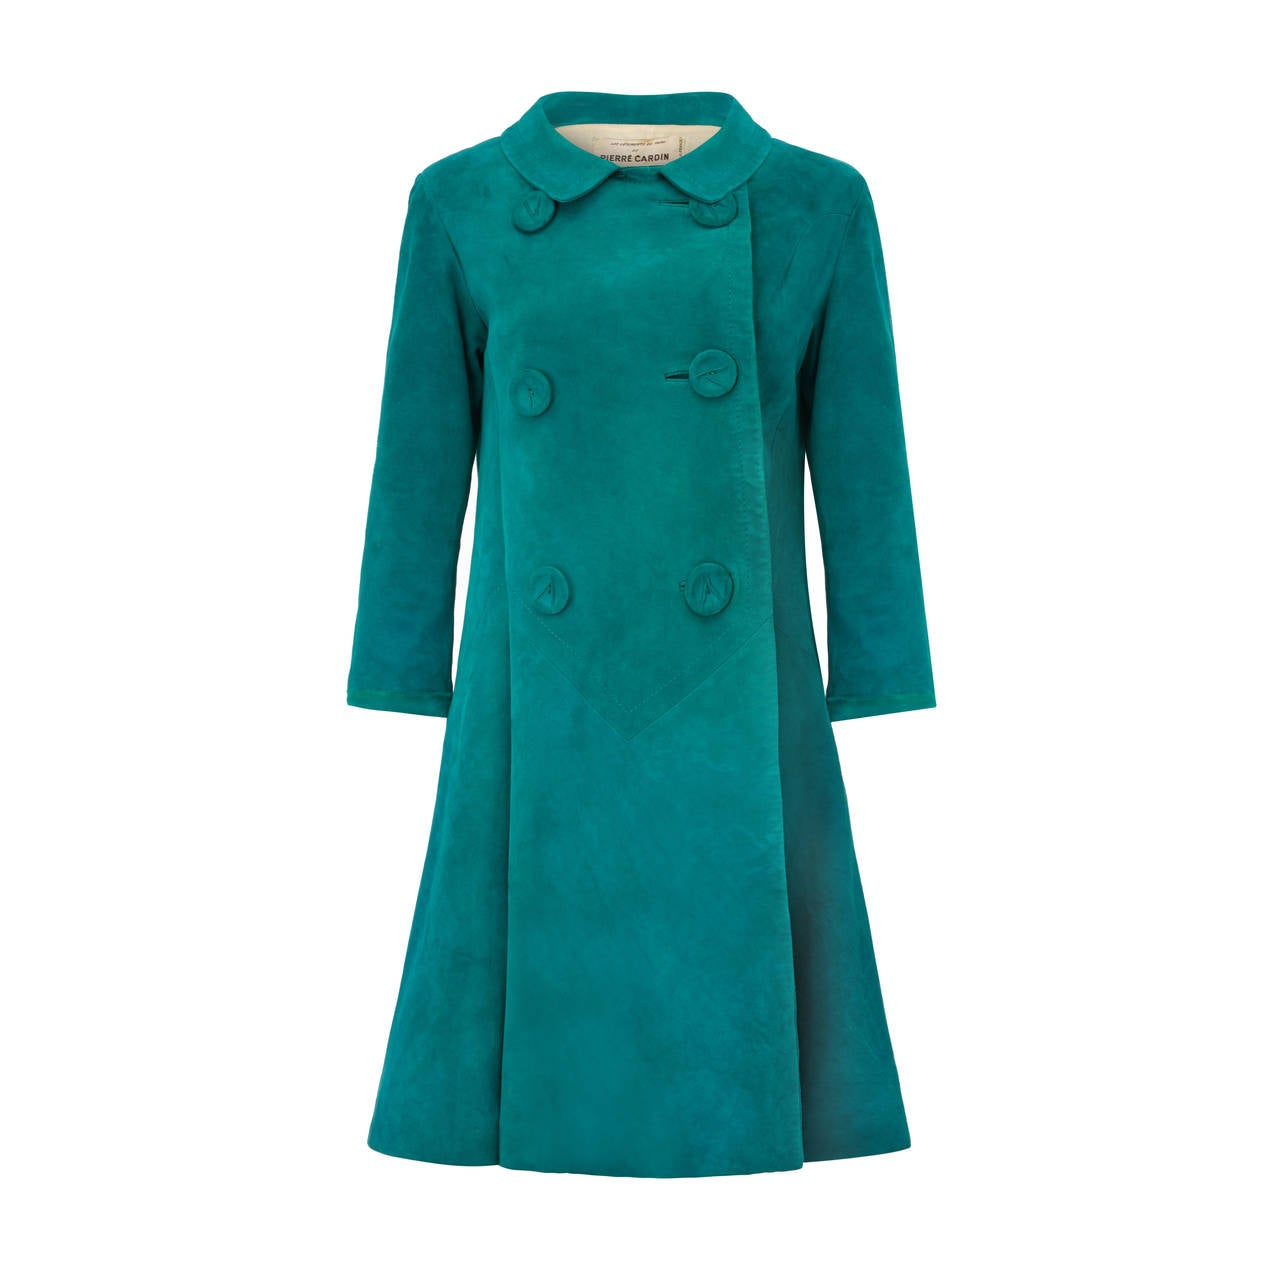 1960s Pierre Cardin Teal Suede Jacket For Sale